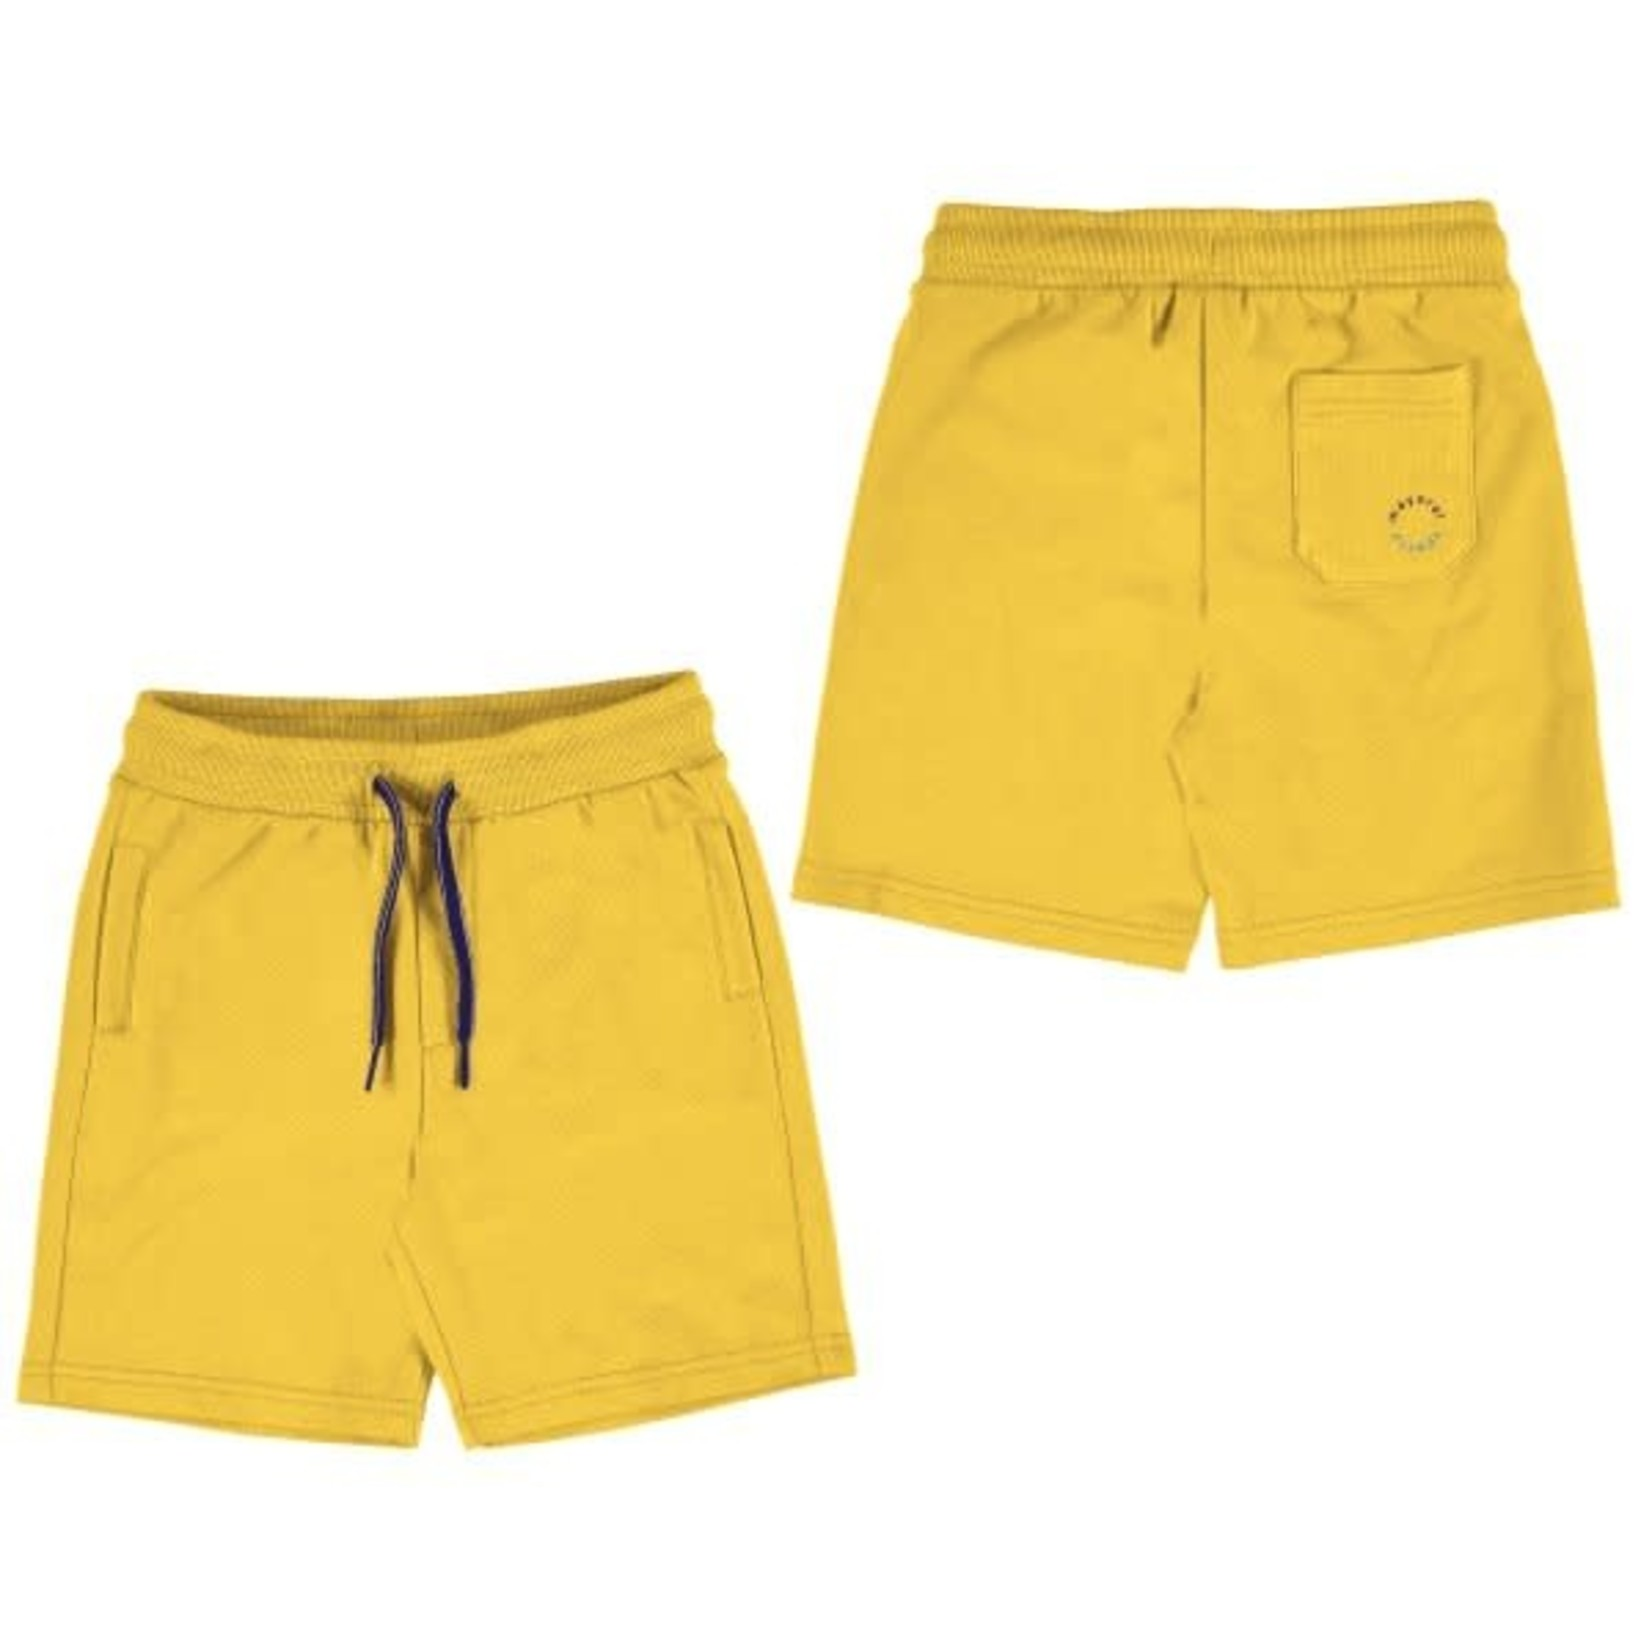 Mayoral Basic fleece shorts   Yellow